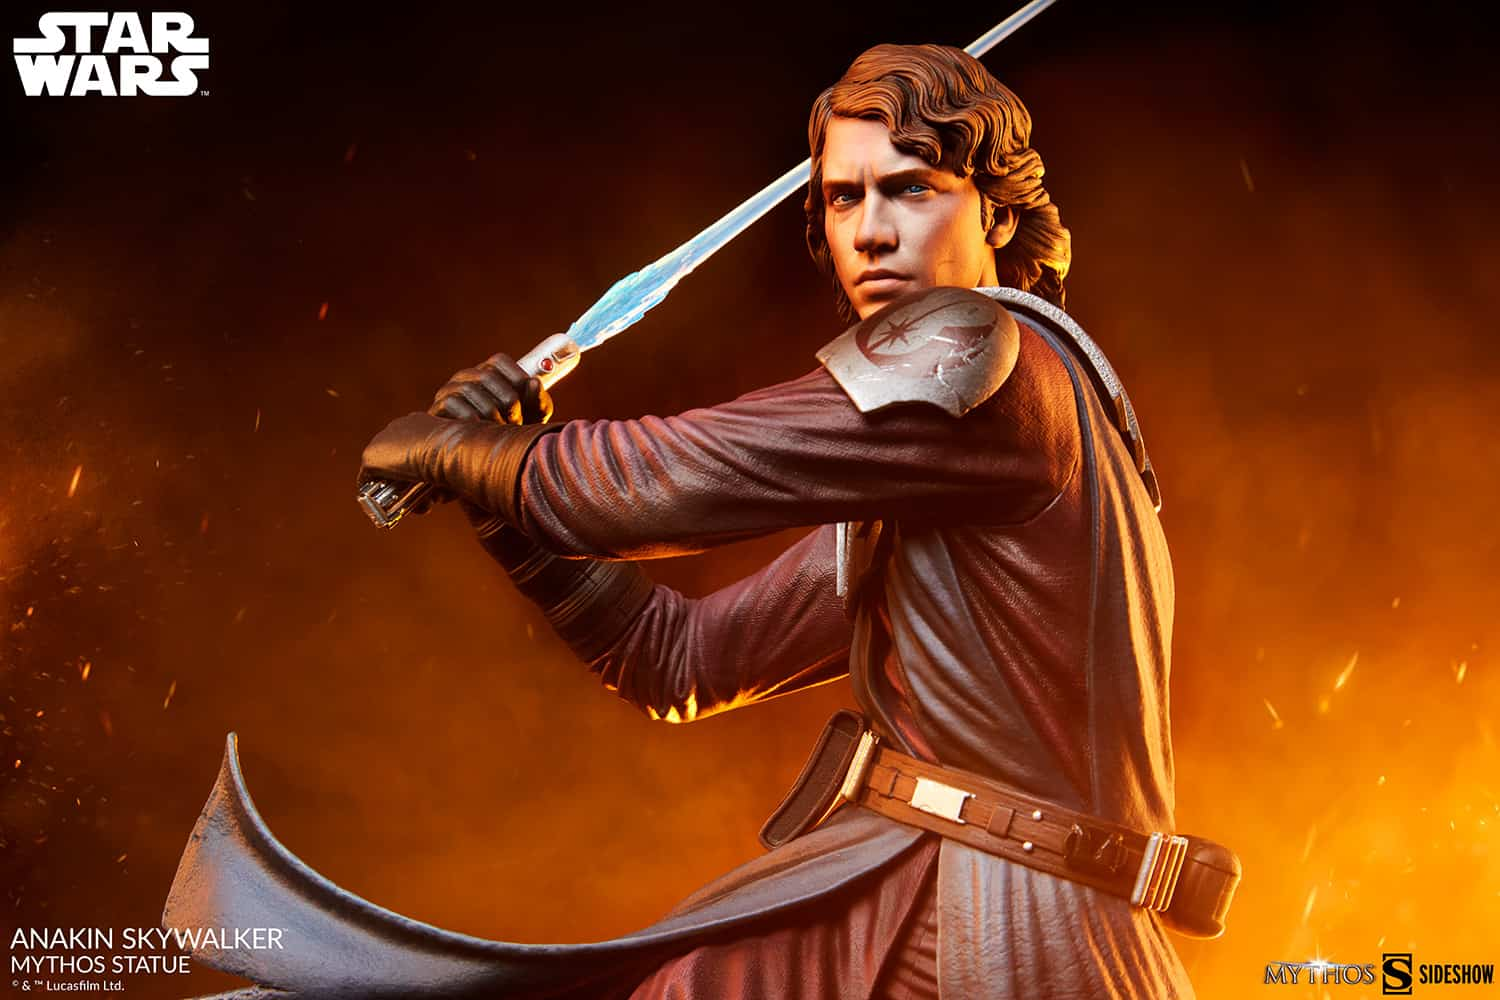 The new Anakin Skywalker Star Wars Mythos statue from the sideshow was unveiled